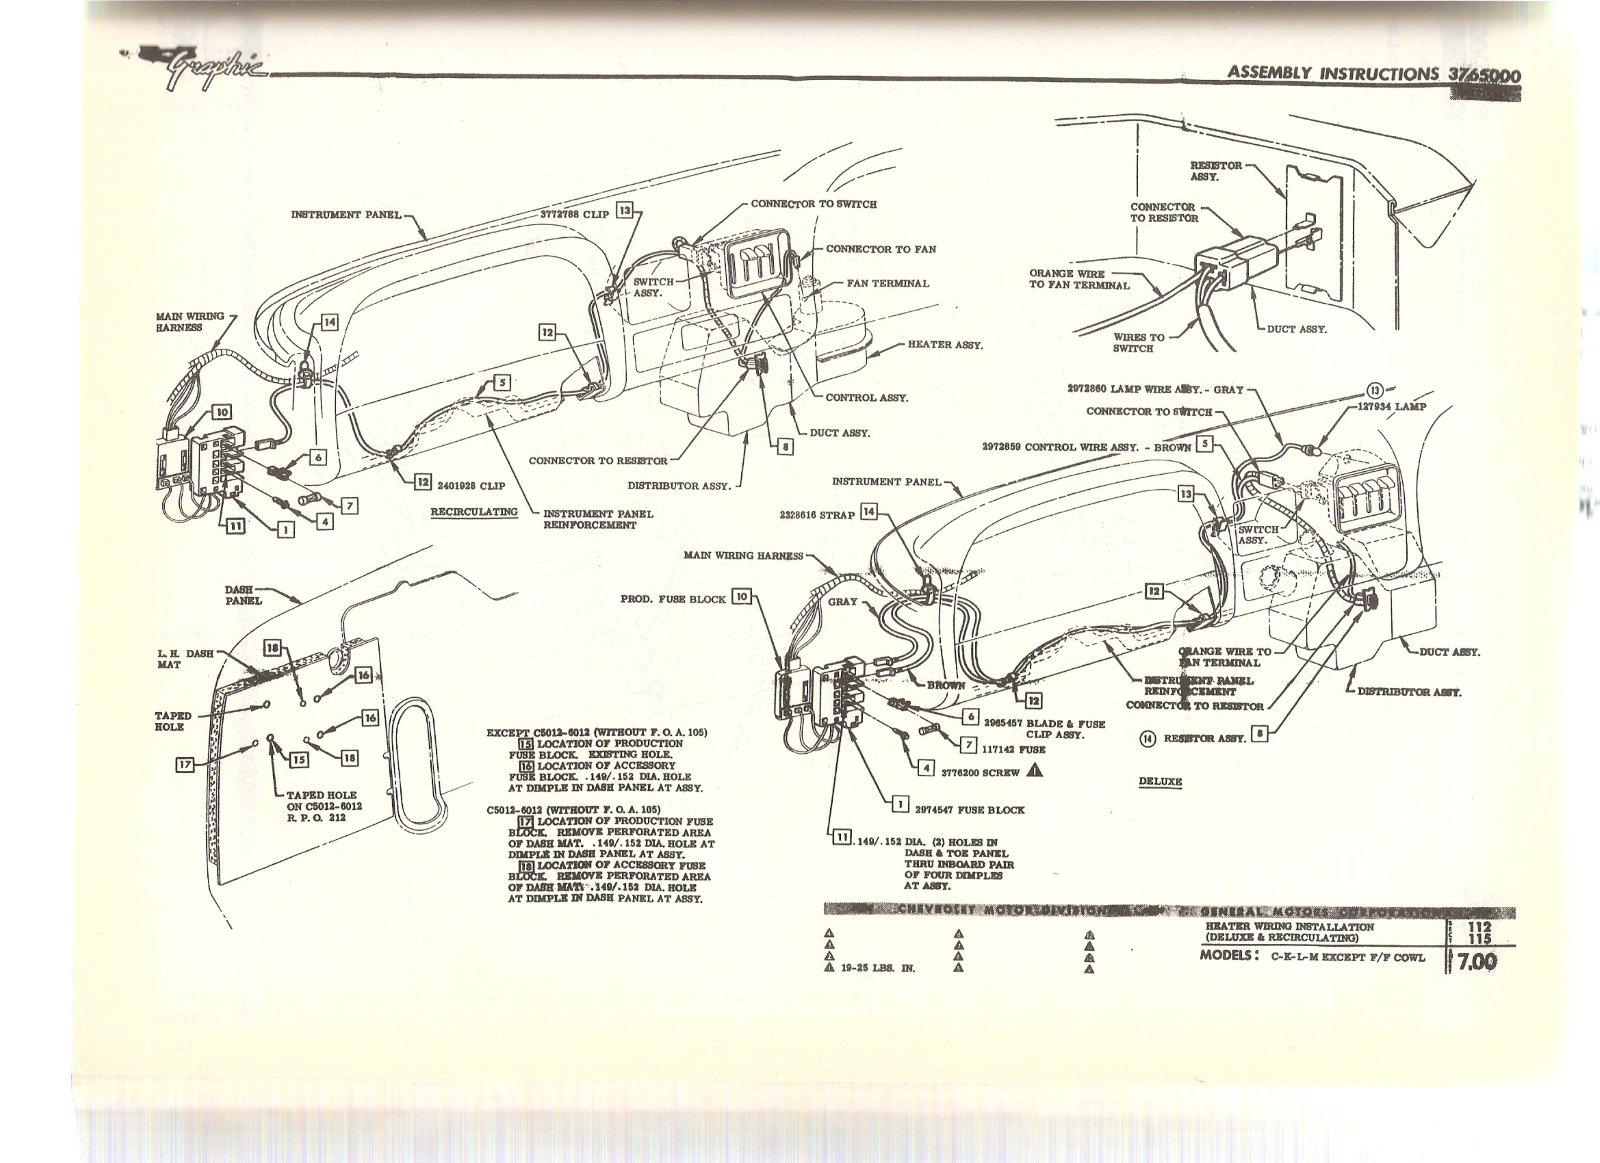 chevy c10 headlight wiring diagram wiring diagrams for chevy trucks the wiring diagram wiring diagram the 1947 present chevrolet gmc truck